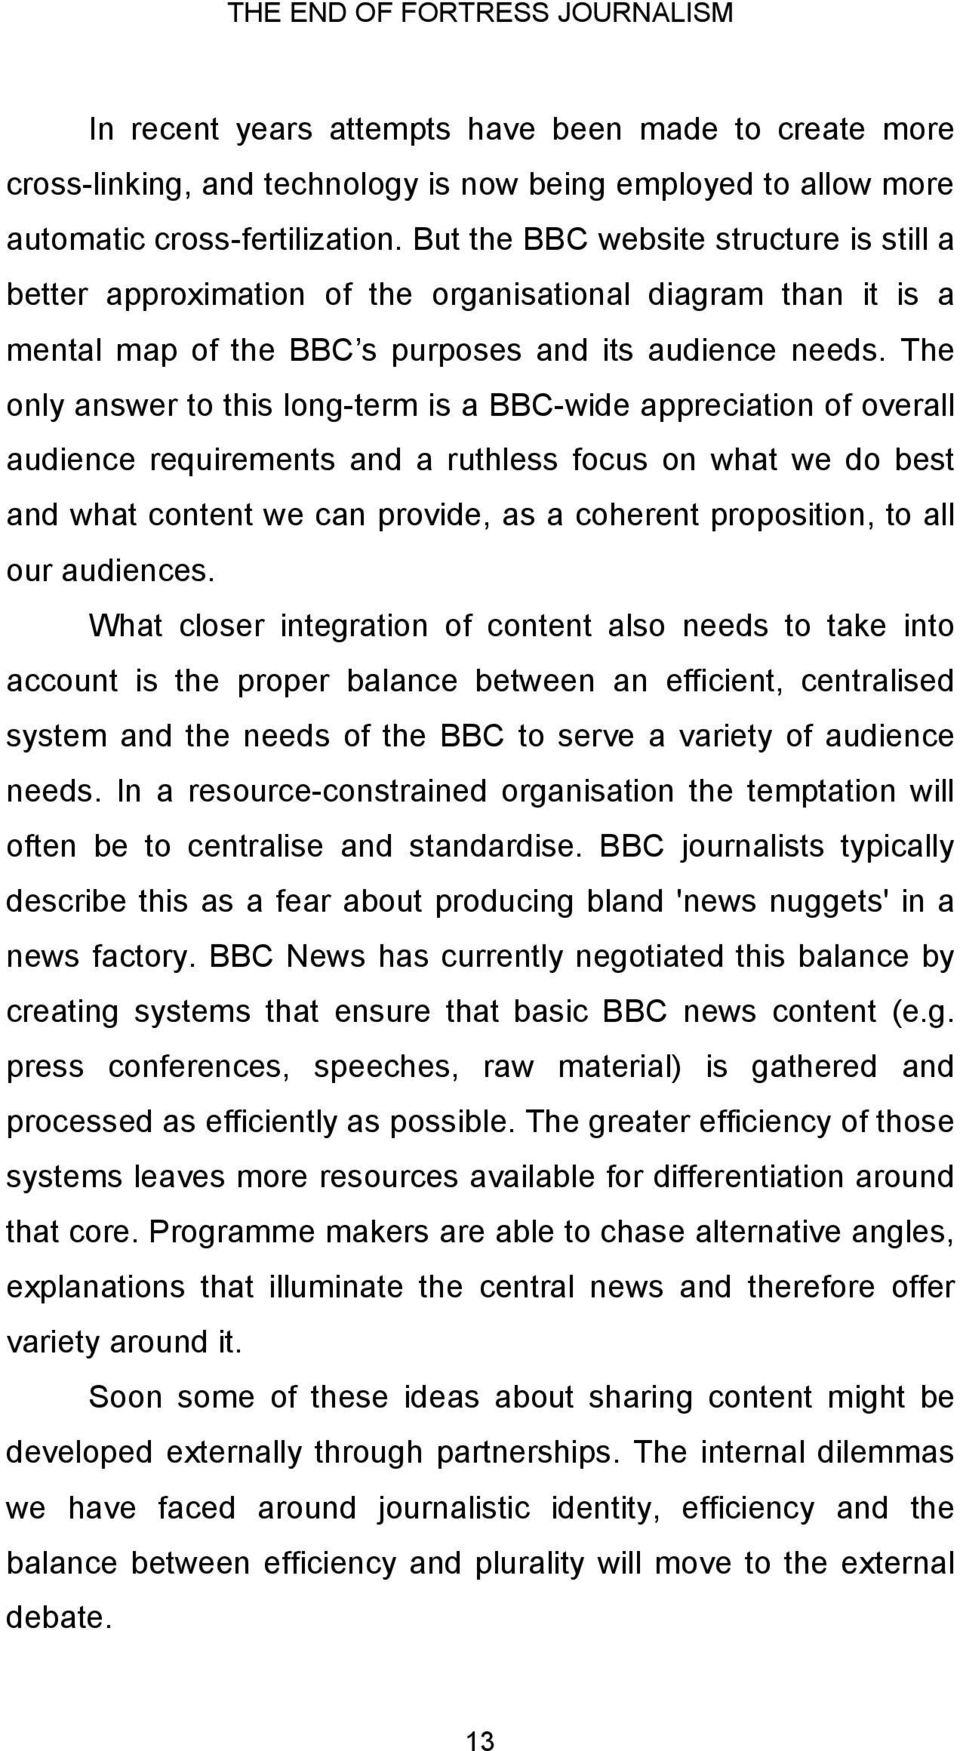 The only answer to this long-term is a BBC-wide appreciation of overall audience requirements and a ruthless focus on what we do best and what content we can provide, as a coherent proposition, to